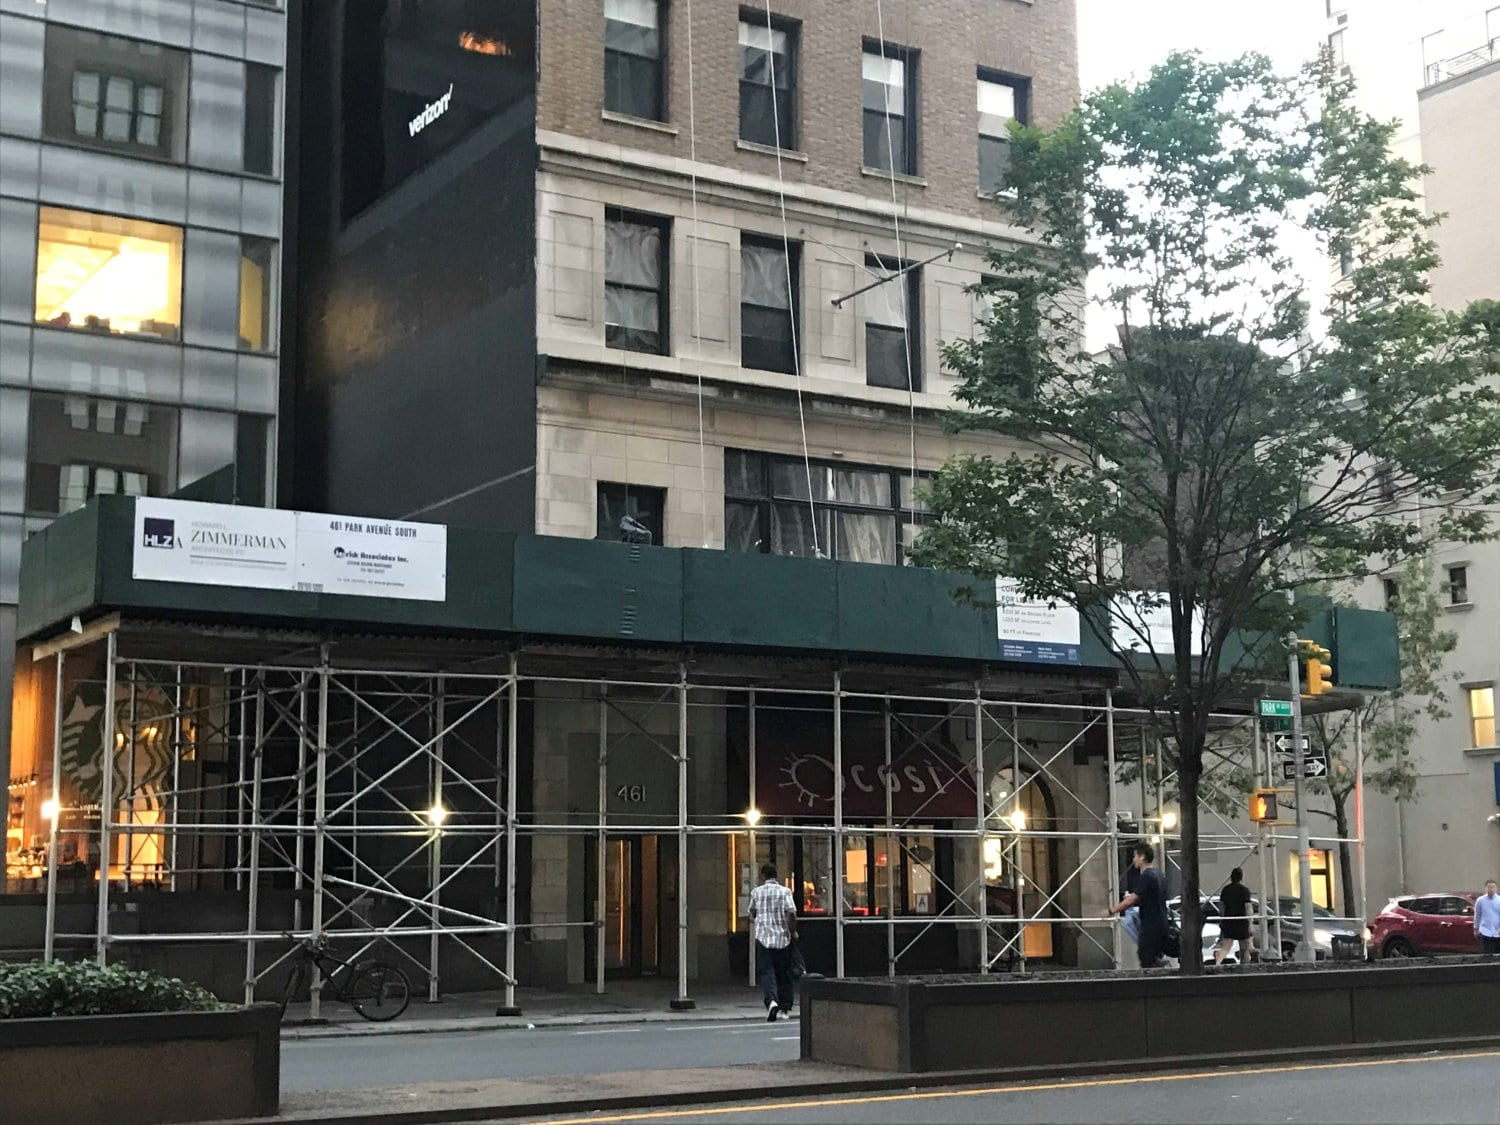 This is an image of the exterior of our physical therapy clinic in East Murray Hill, Manhattan, New York.